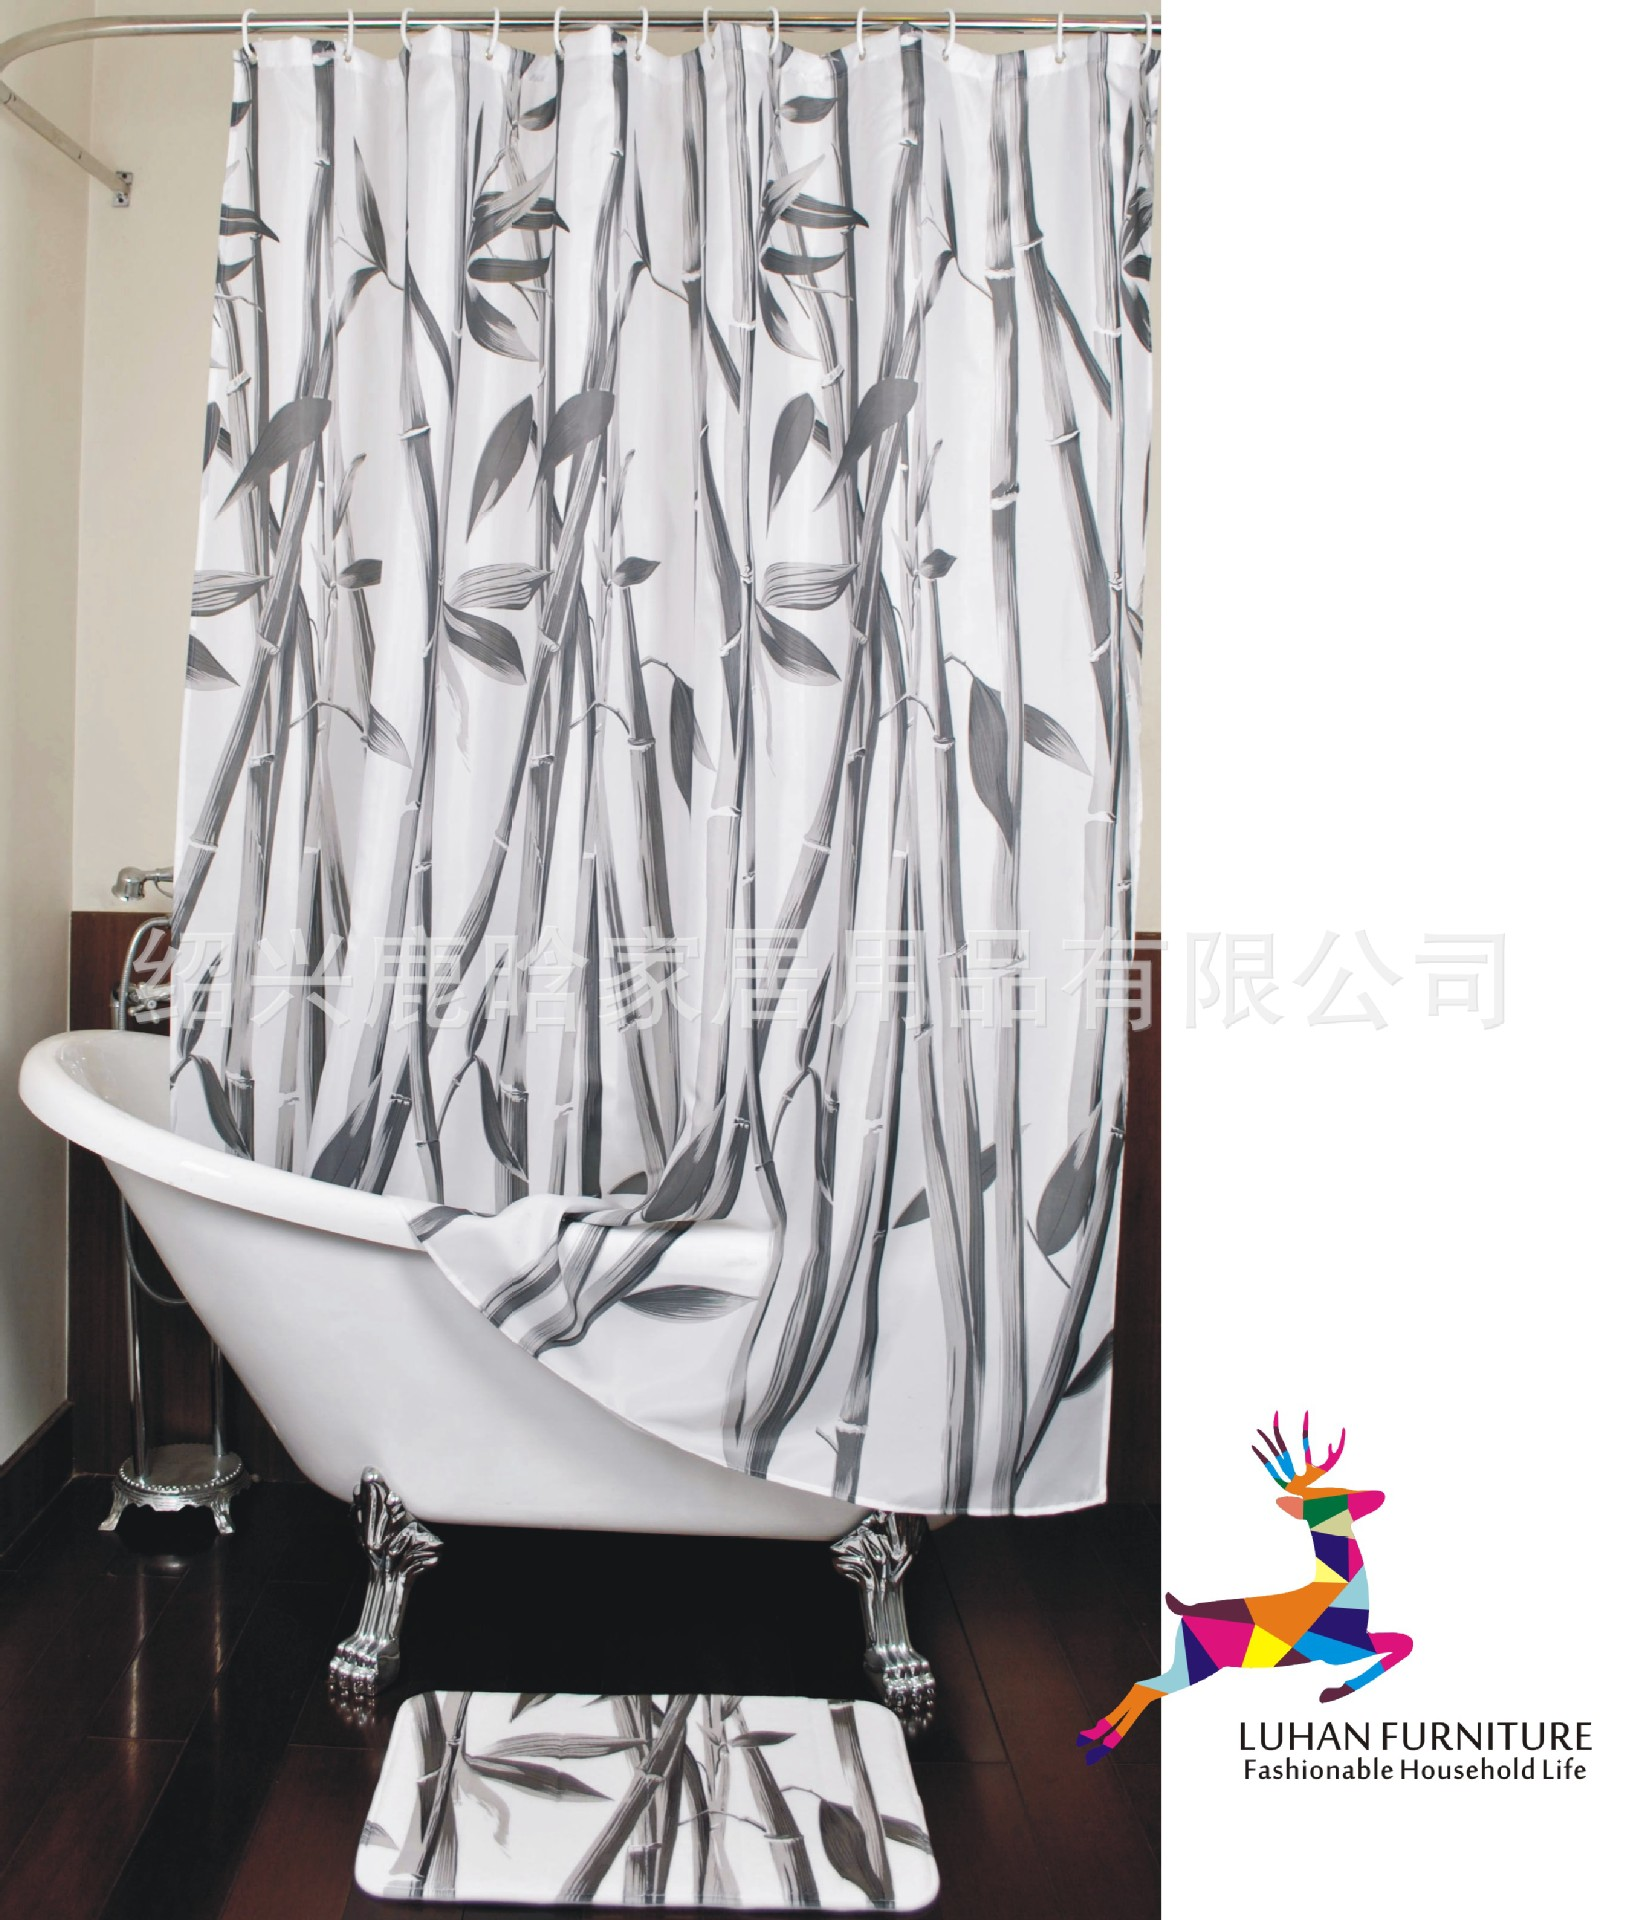 Cheap grey curtains - 180x180cm Black Grey Bamboo Shower Curtain Plant Shower Curtain Special Style Free Shipping China